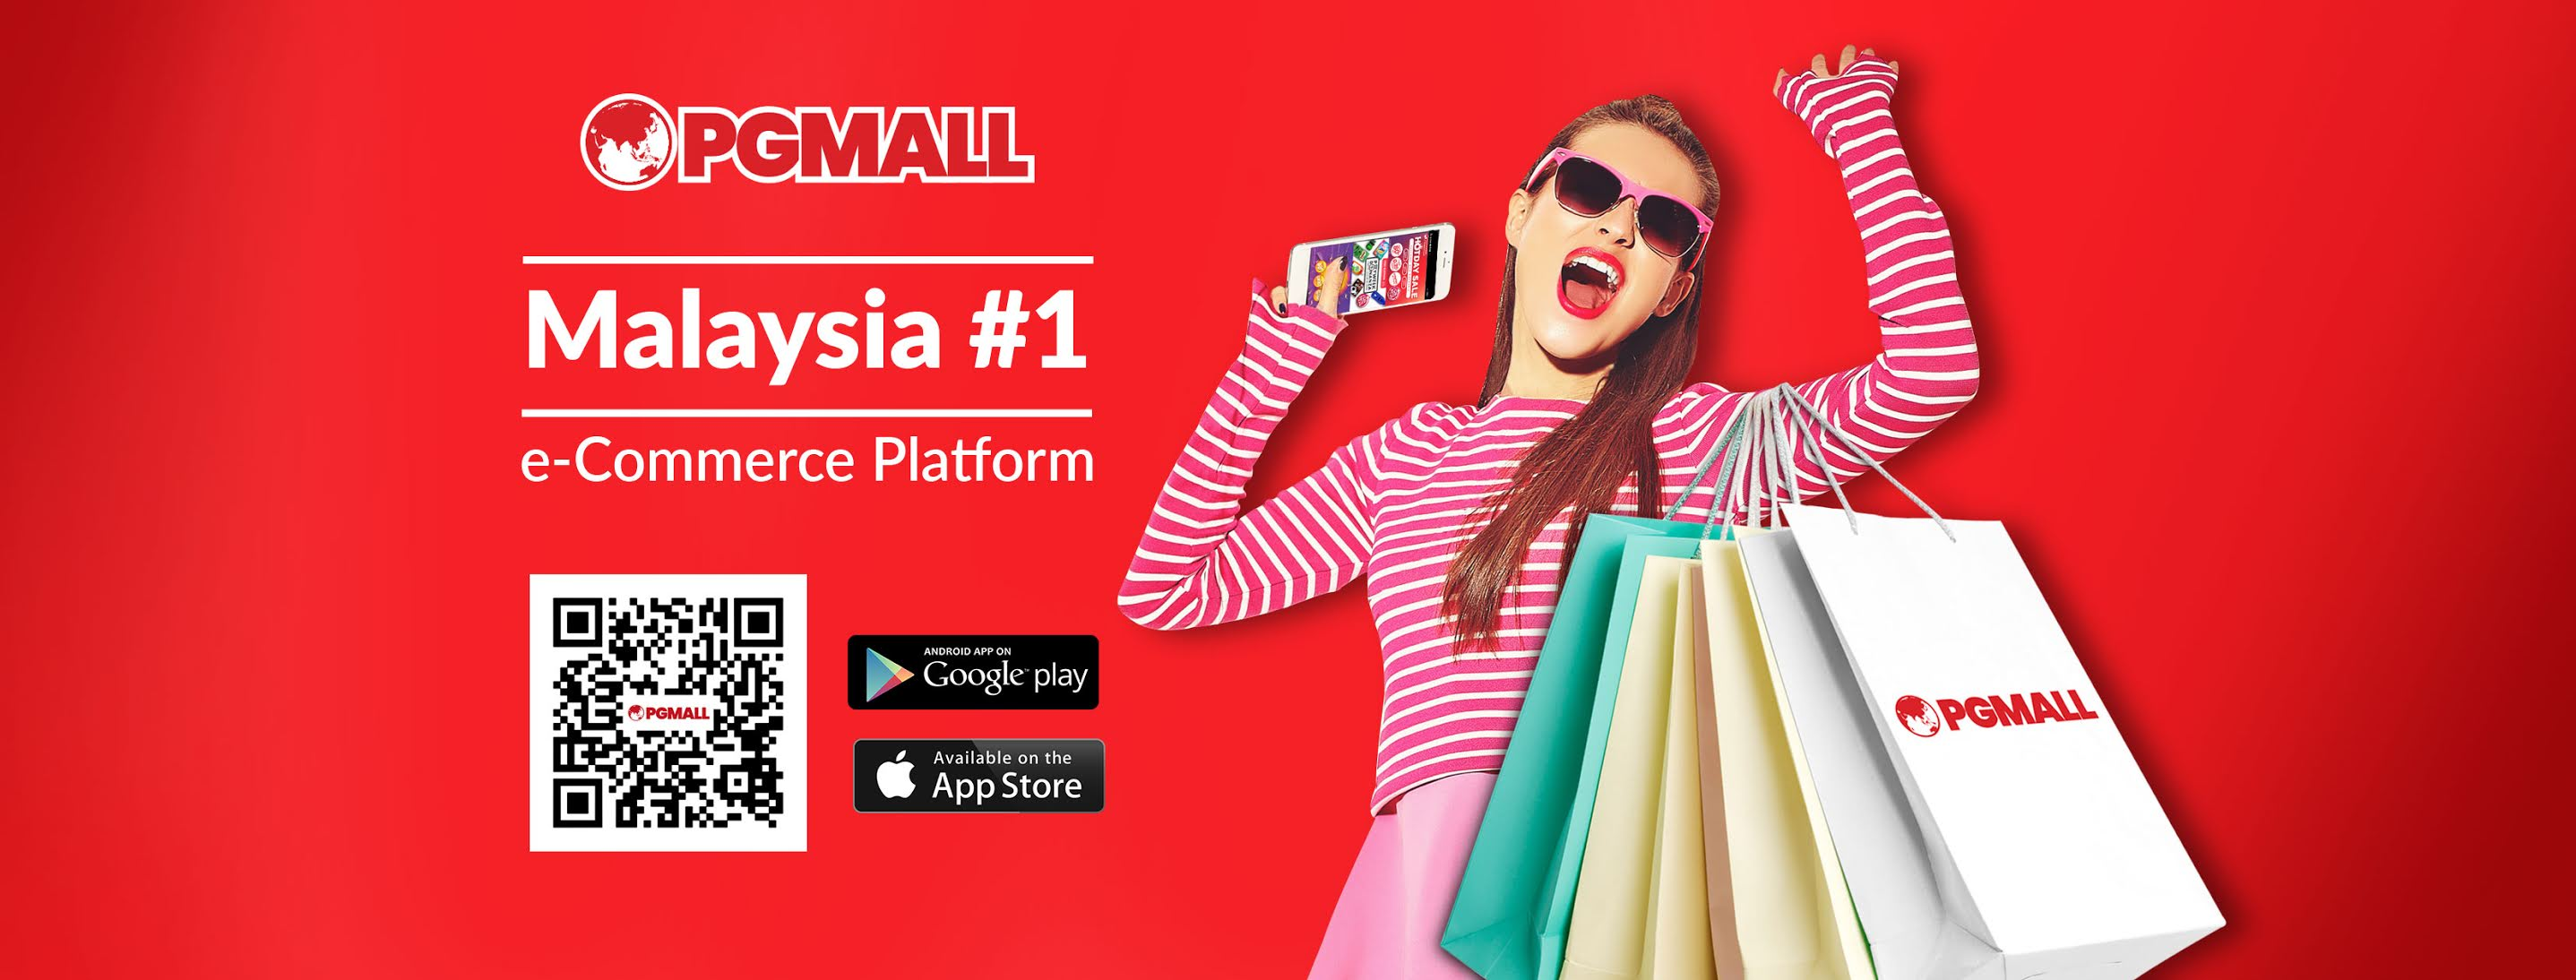 PG Mall online shop